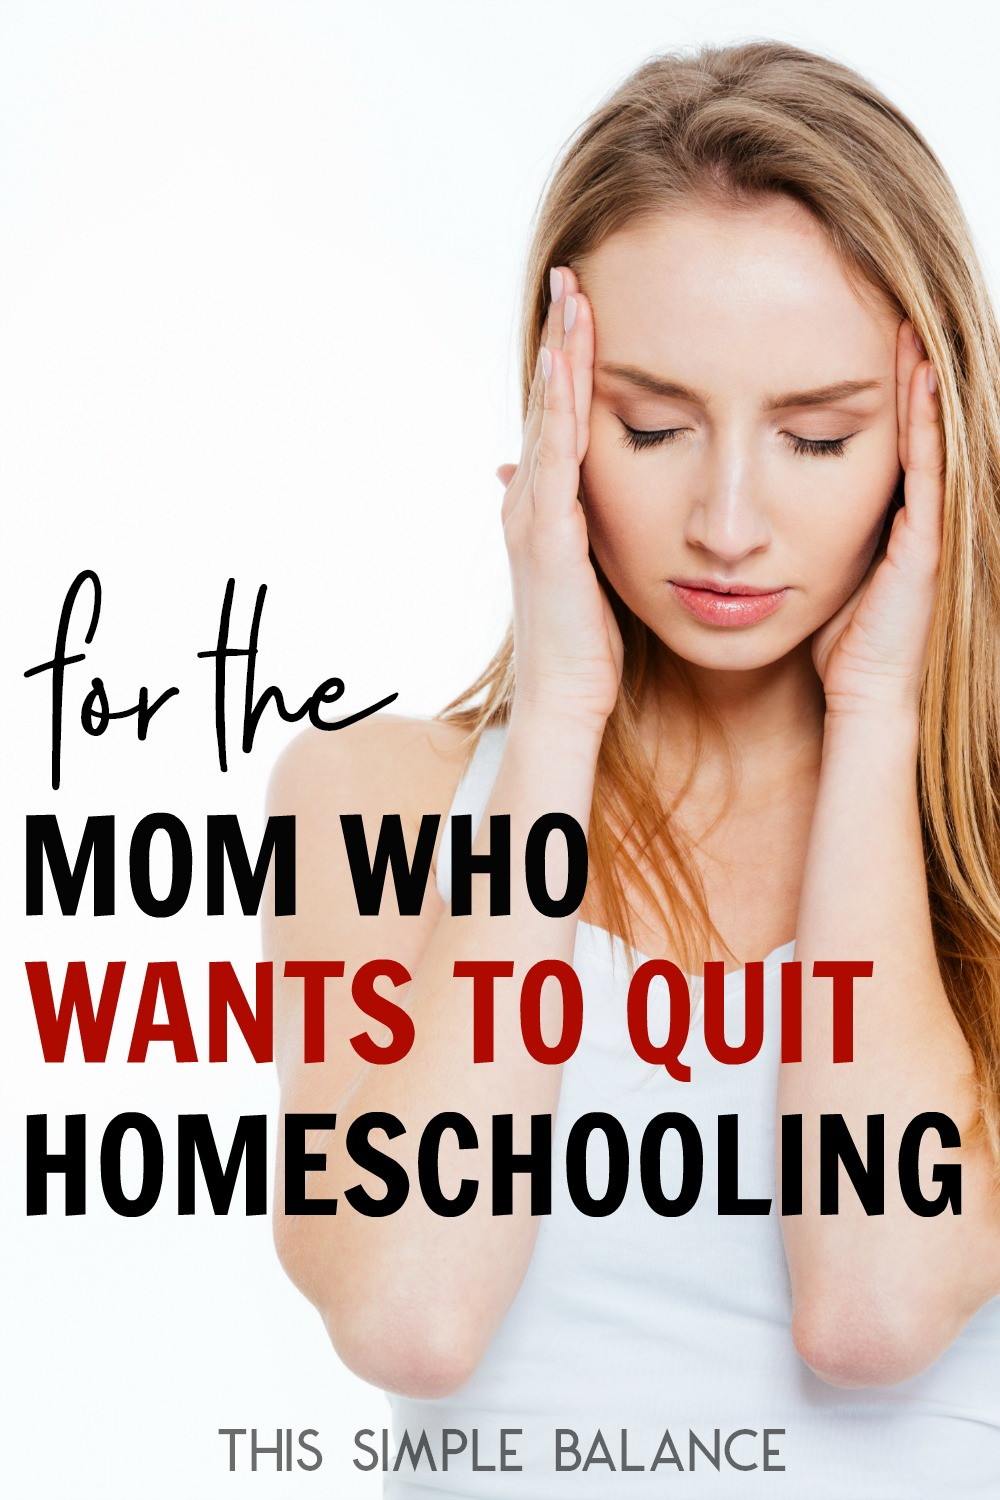 Want to quit homeschooling and don't know where to turn? You need to read this.